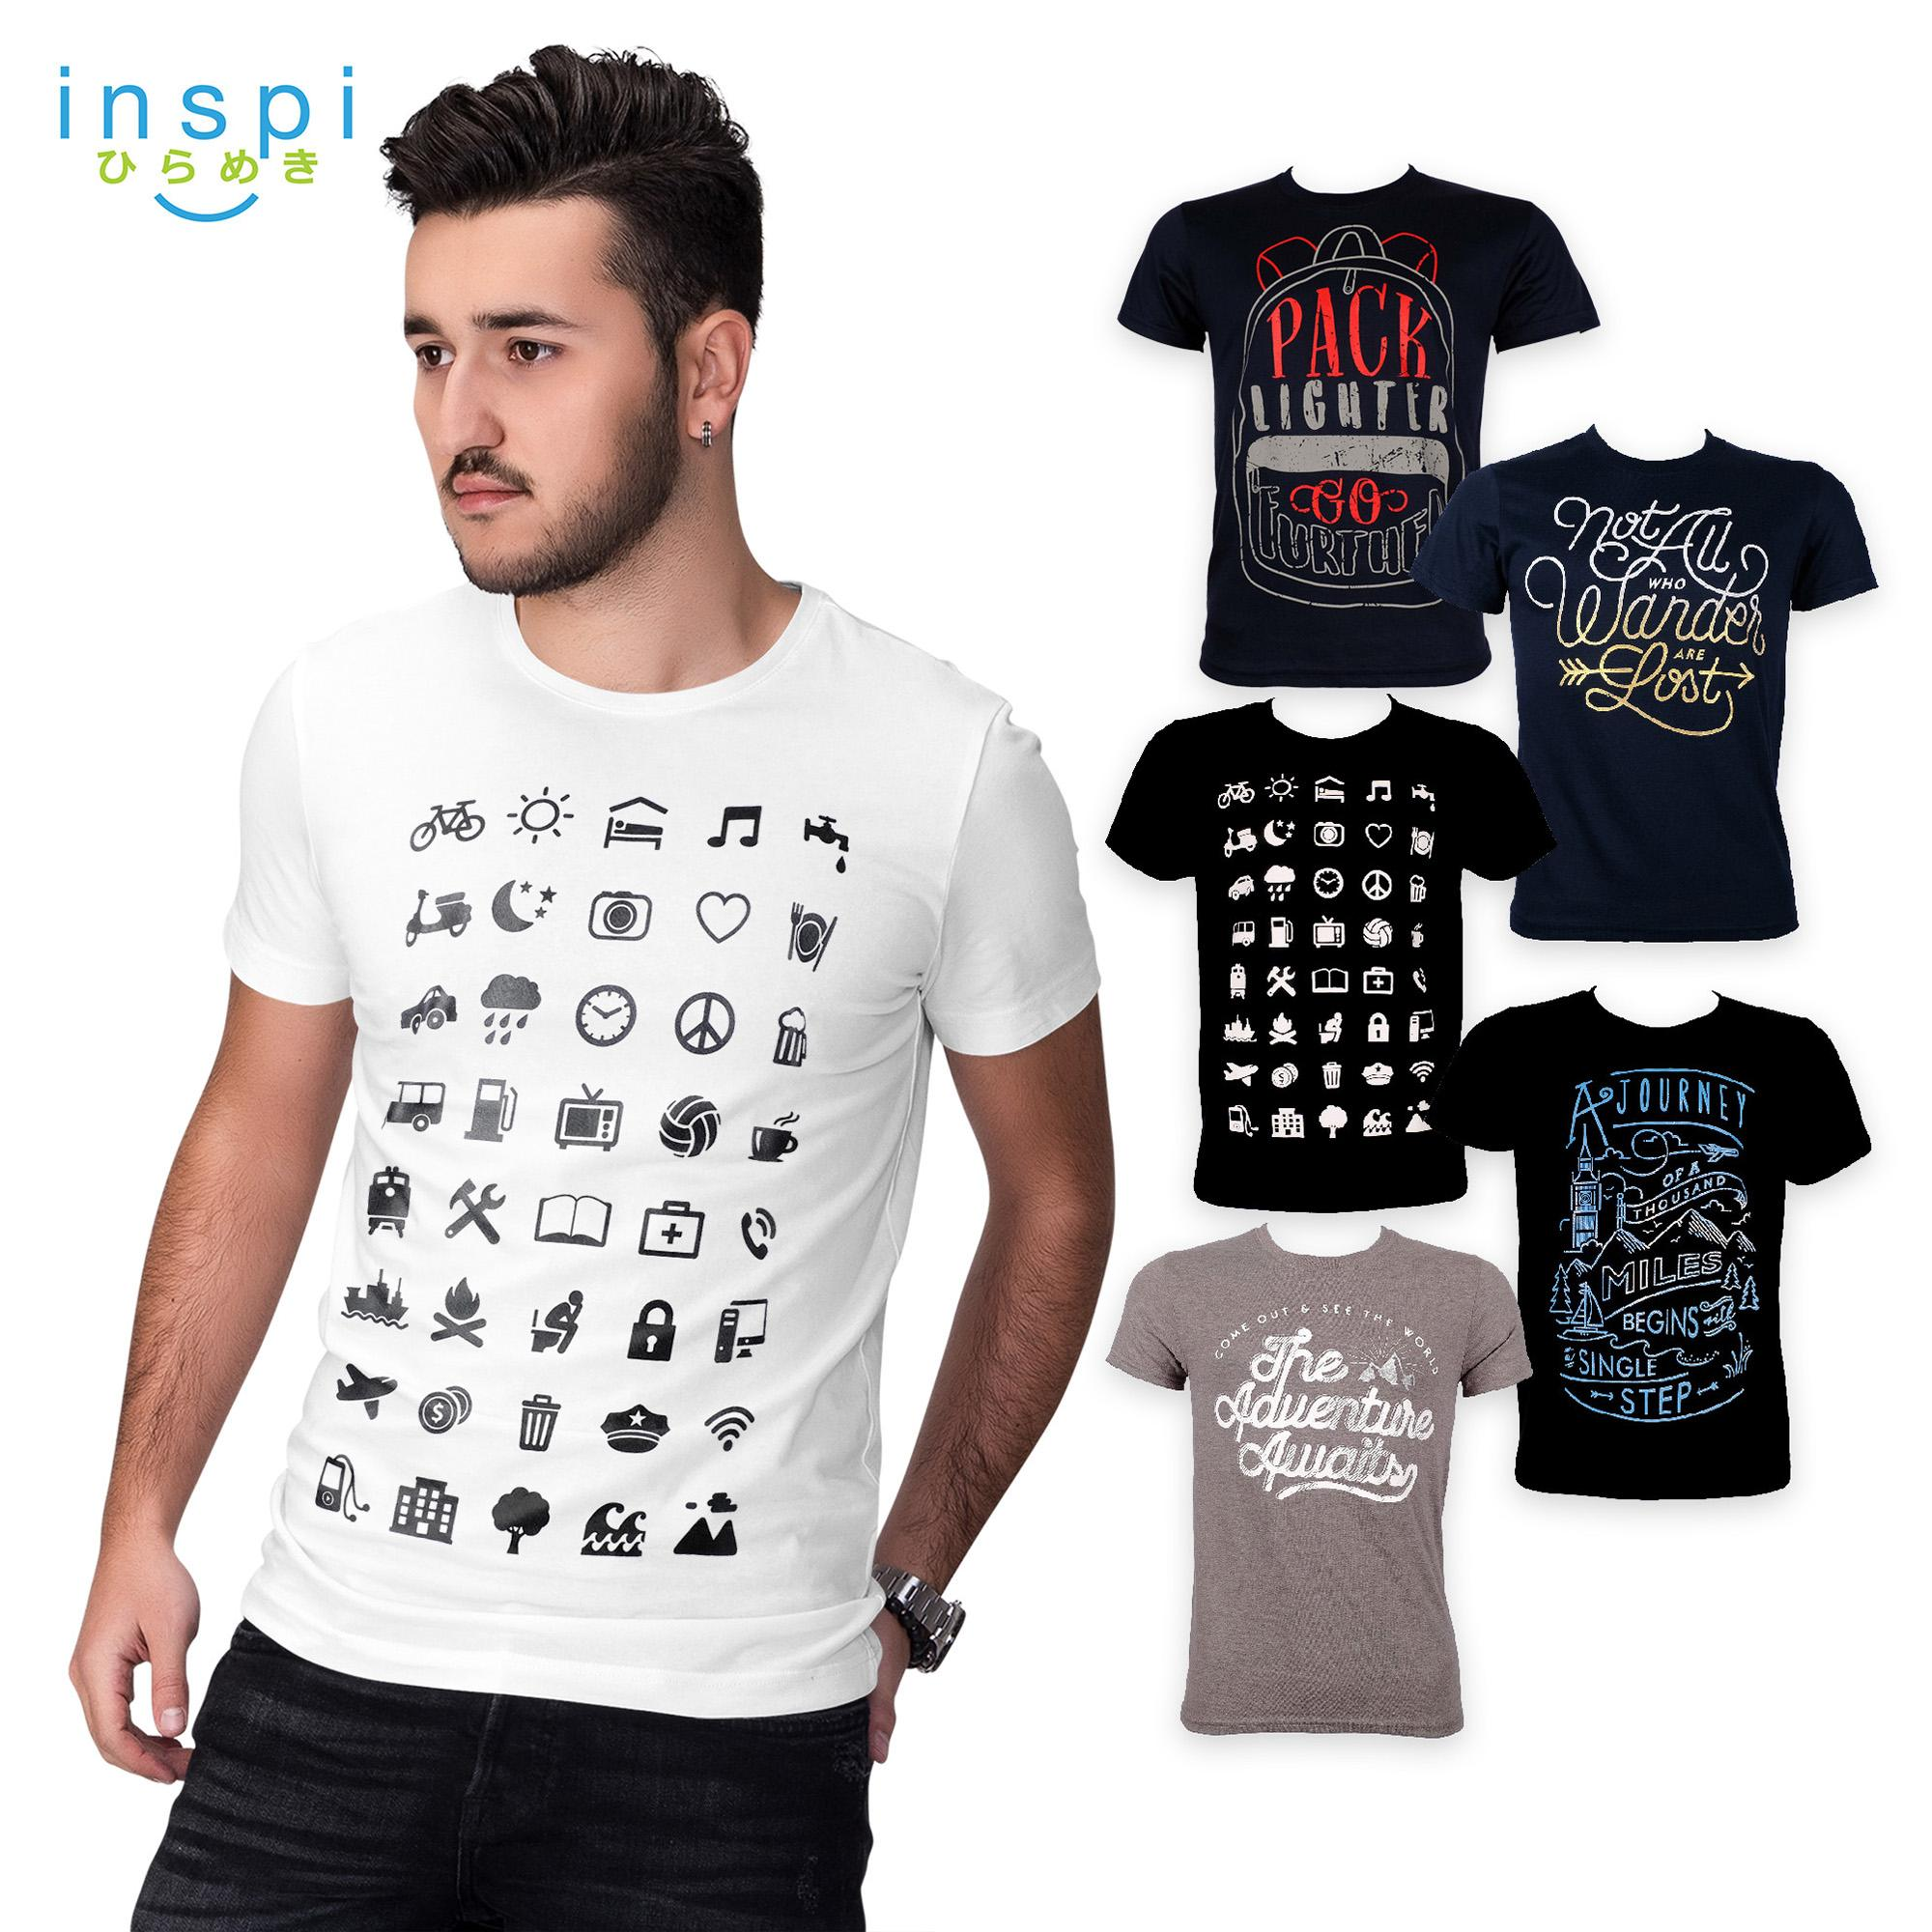 890583487f INSPI Tees Travel Collection tshirt printed graphic tee Mens t shirt shirts  for men tshirts sale